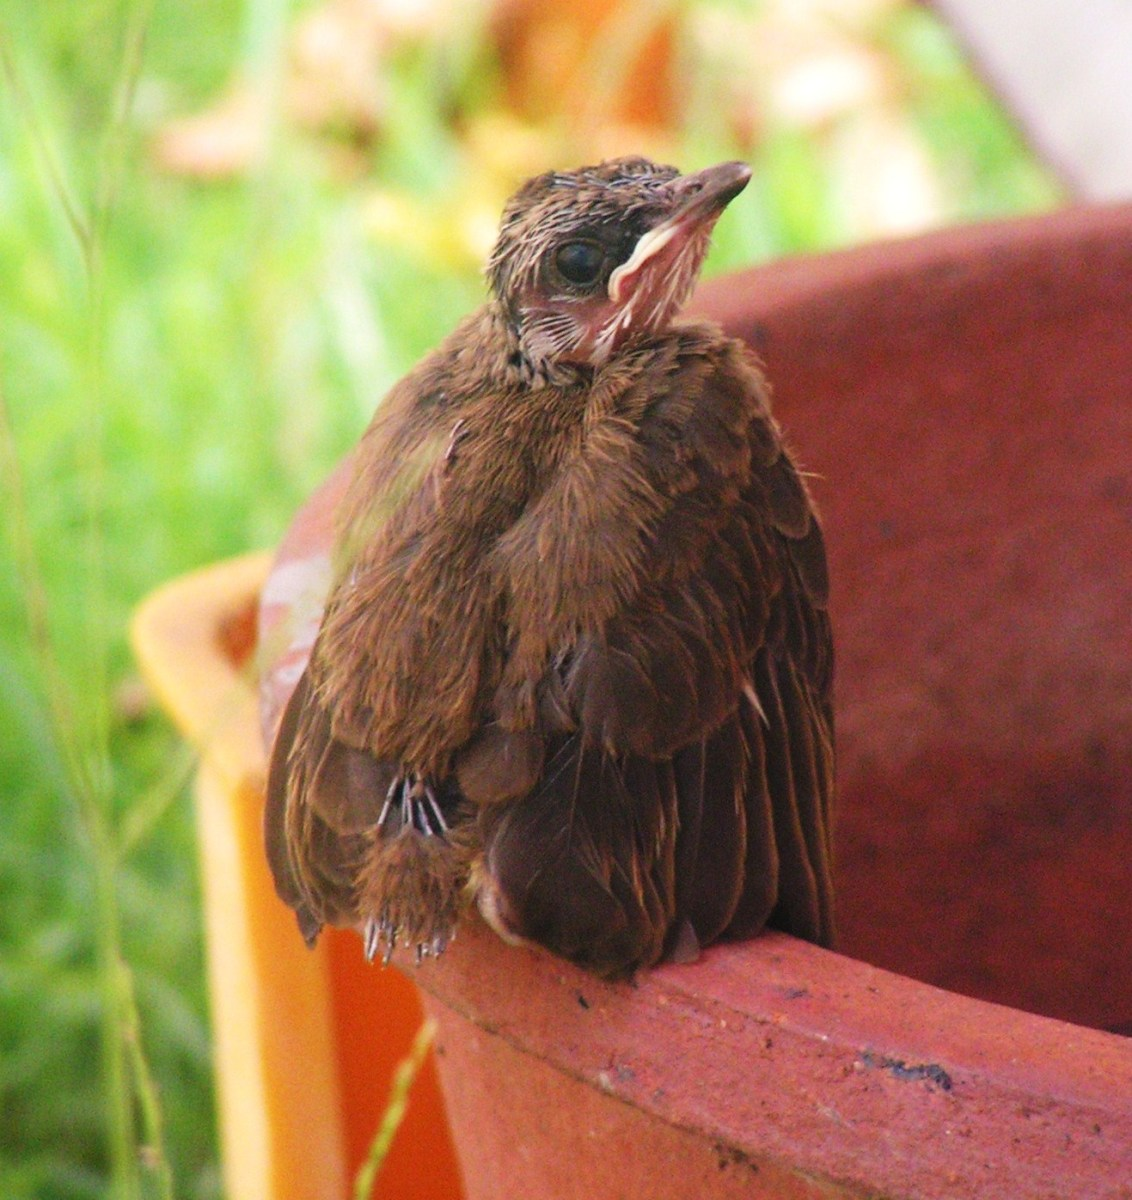 How To Save A Fallen Nestling